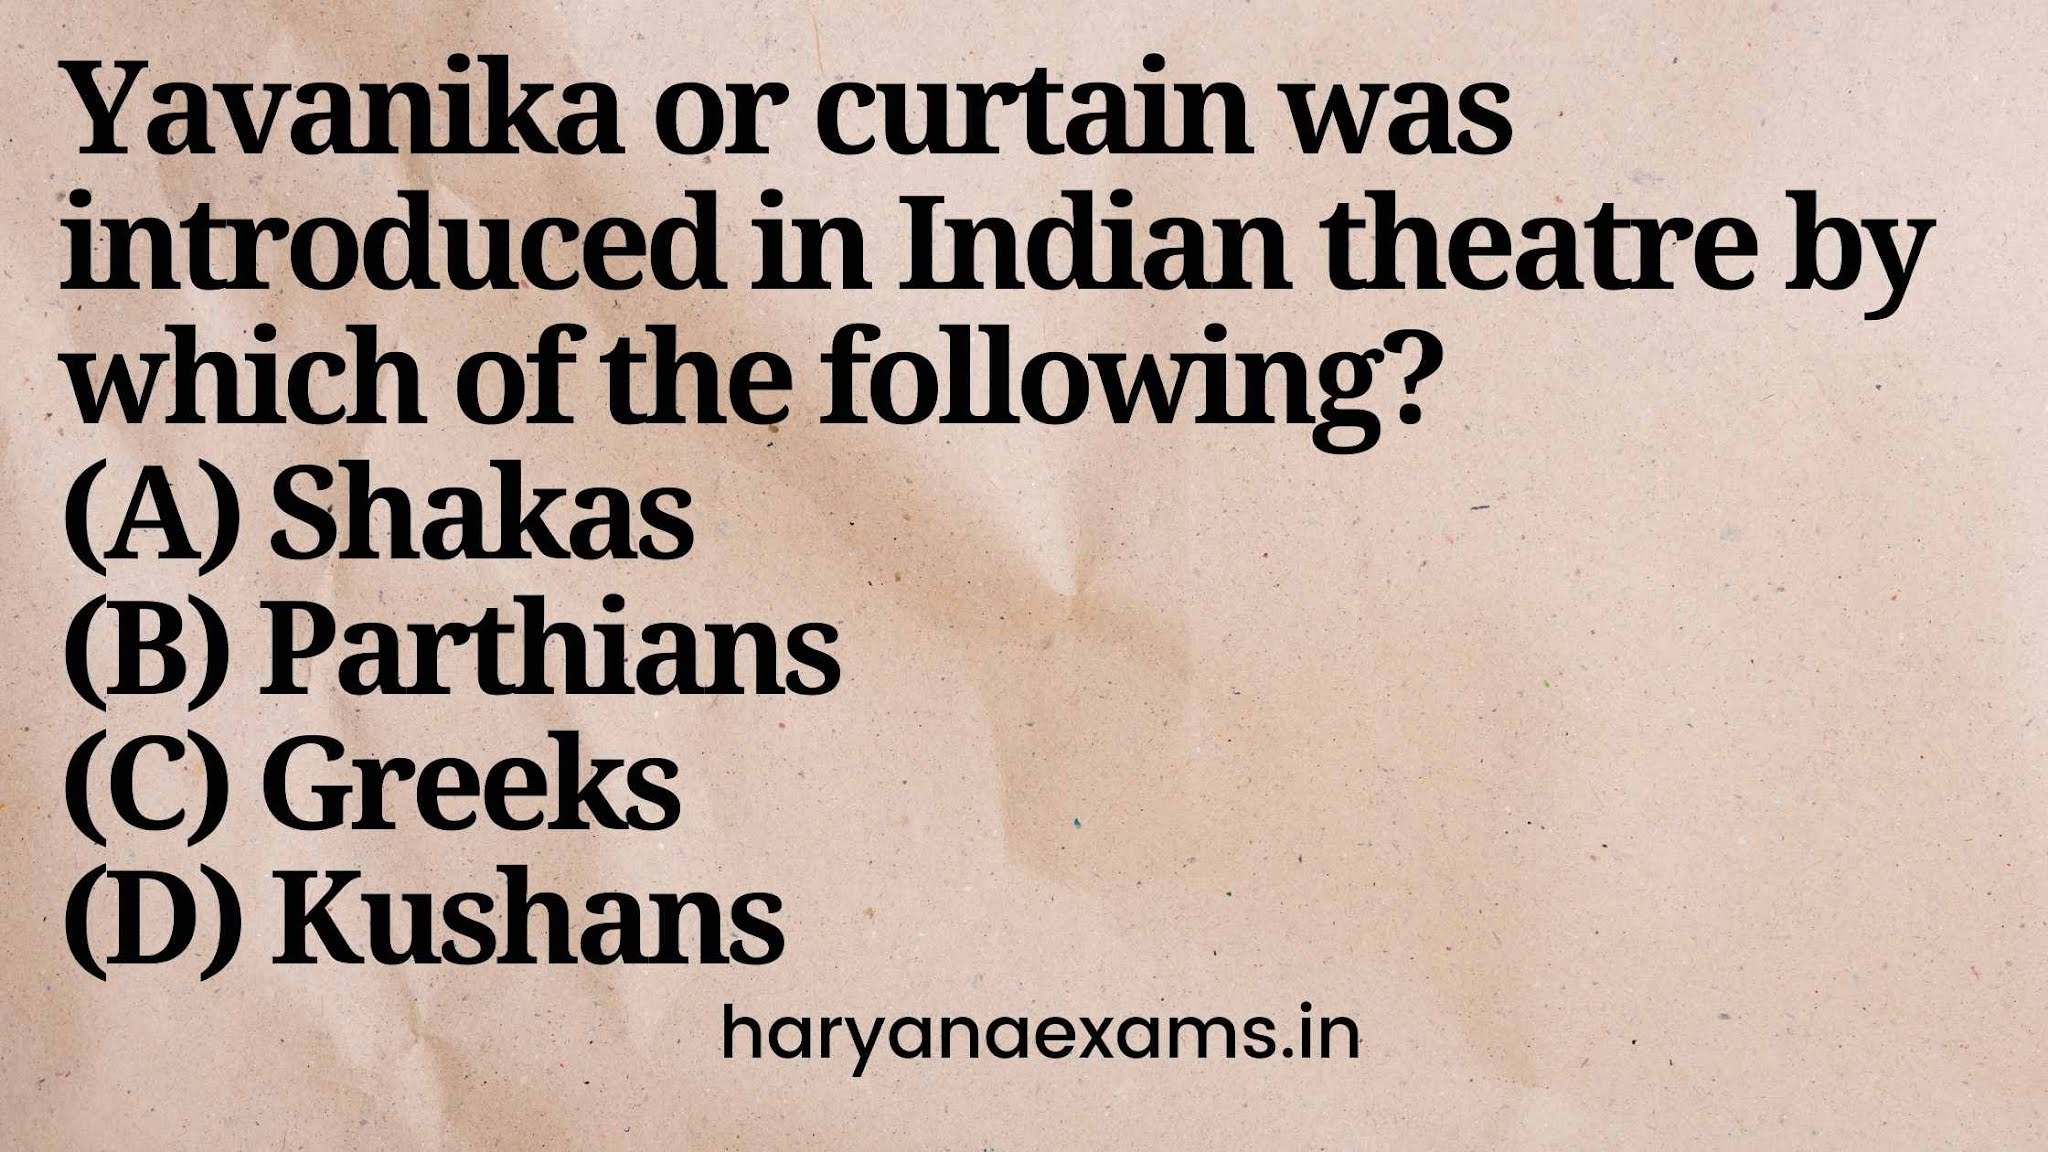 Yavanika or curtain was introduced in Indian theatre by which of the following?  (A) Shakas  (B) Parthians  (C) Greeks  (D) Kushans